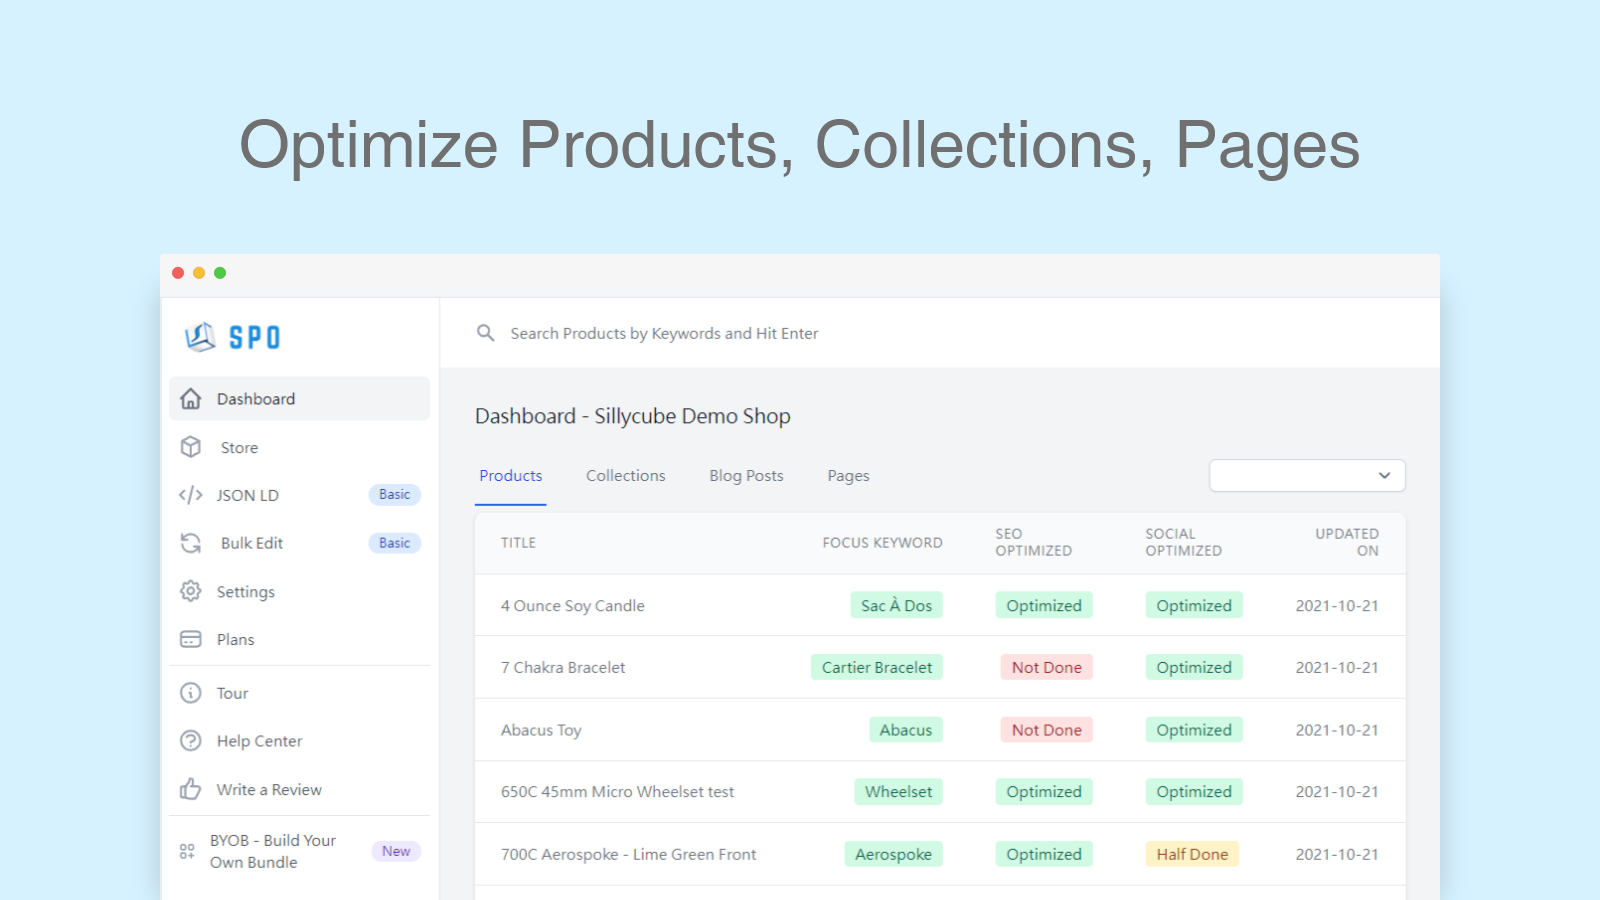 Optimize SEO for Products, Collections, Pages